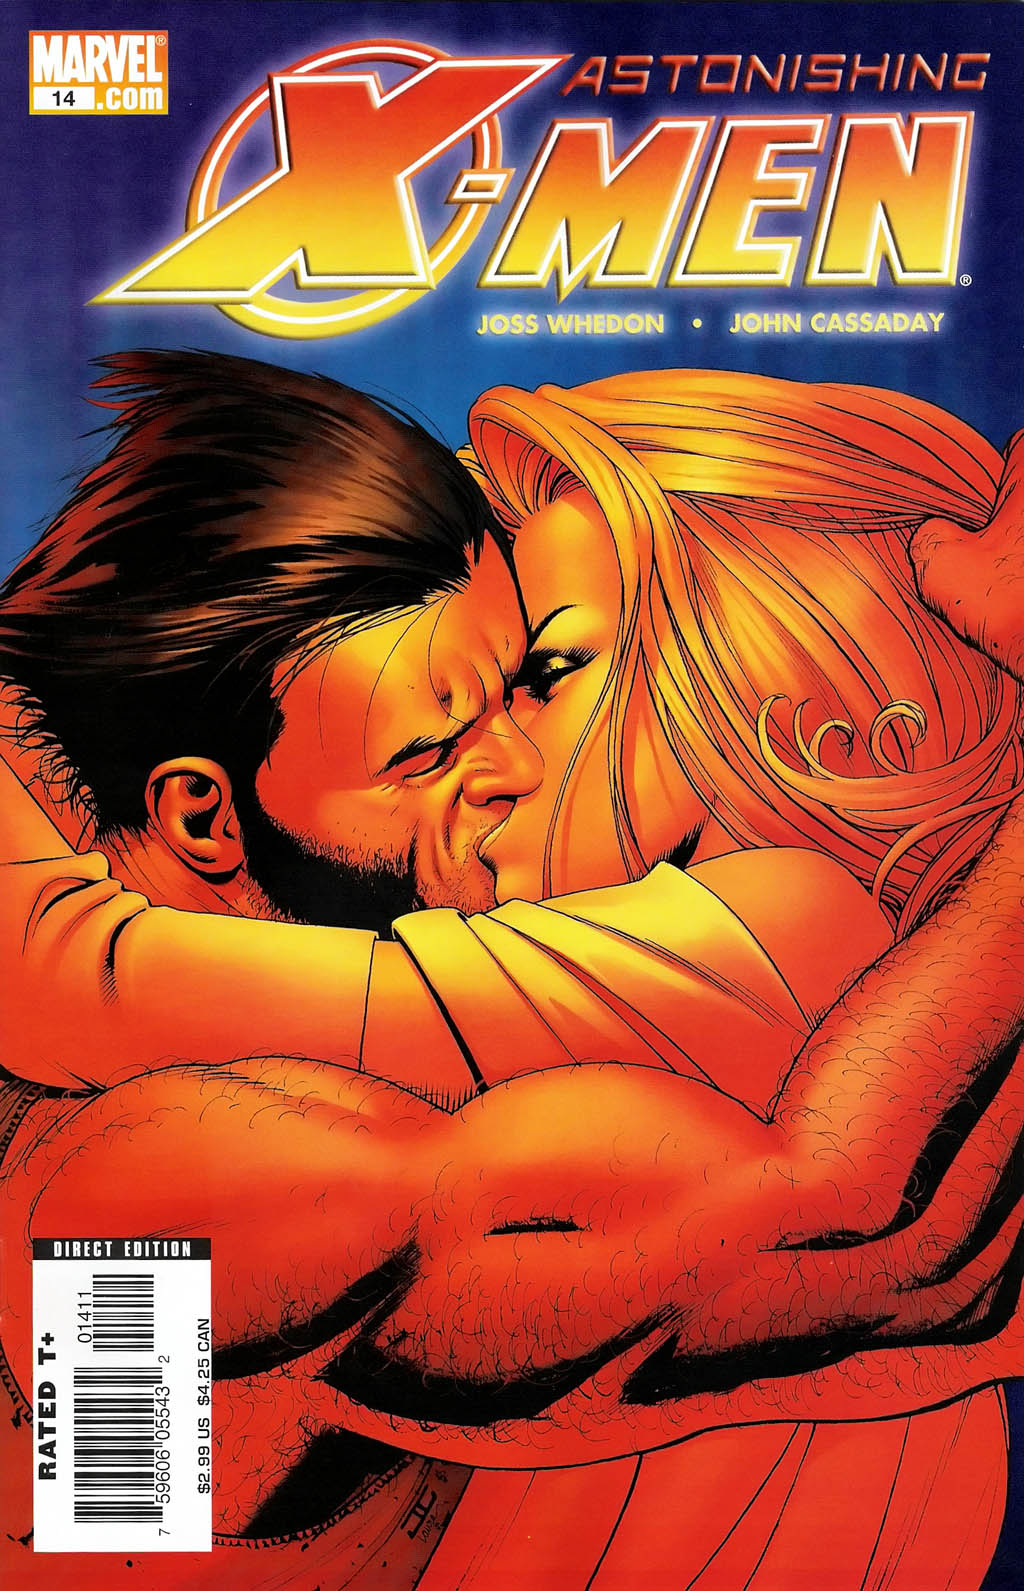 Emma Frost S Relationship With Wolverine